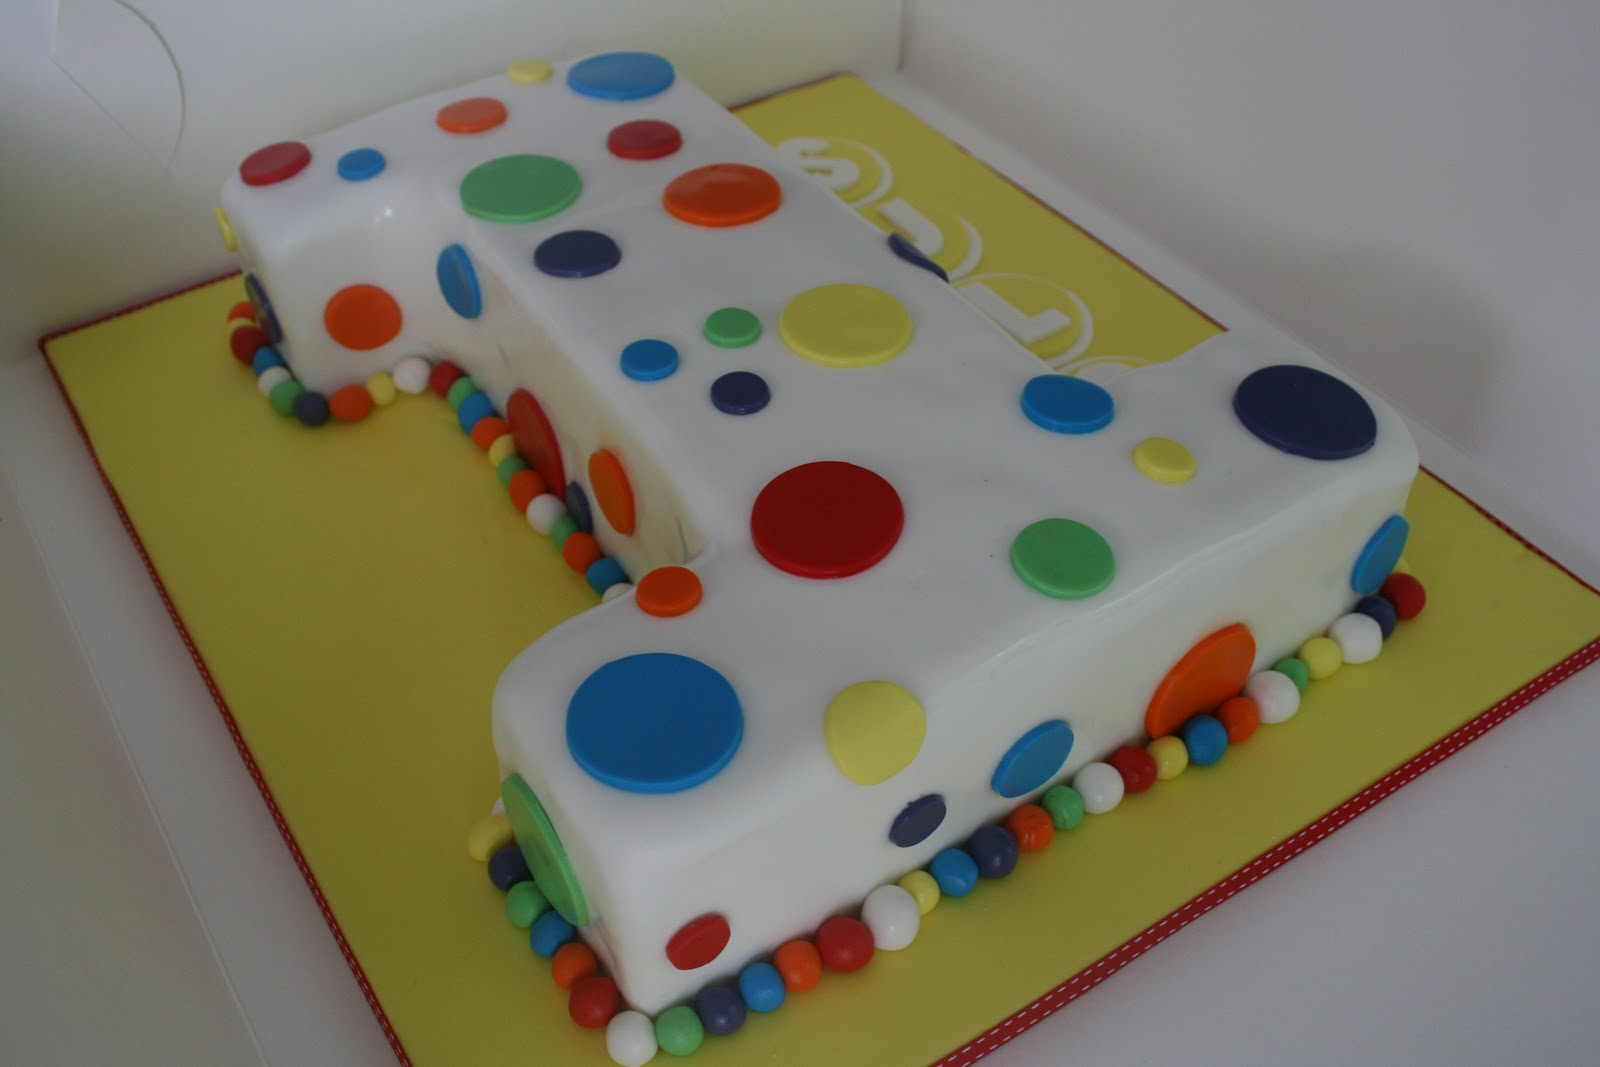 Cake Design Number 1 : Baked By Design: Number 1 Birthday cake